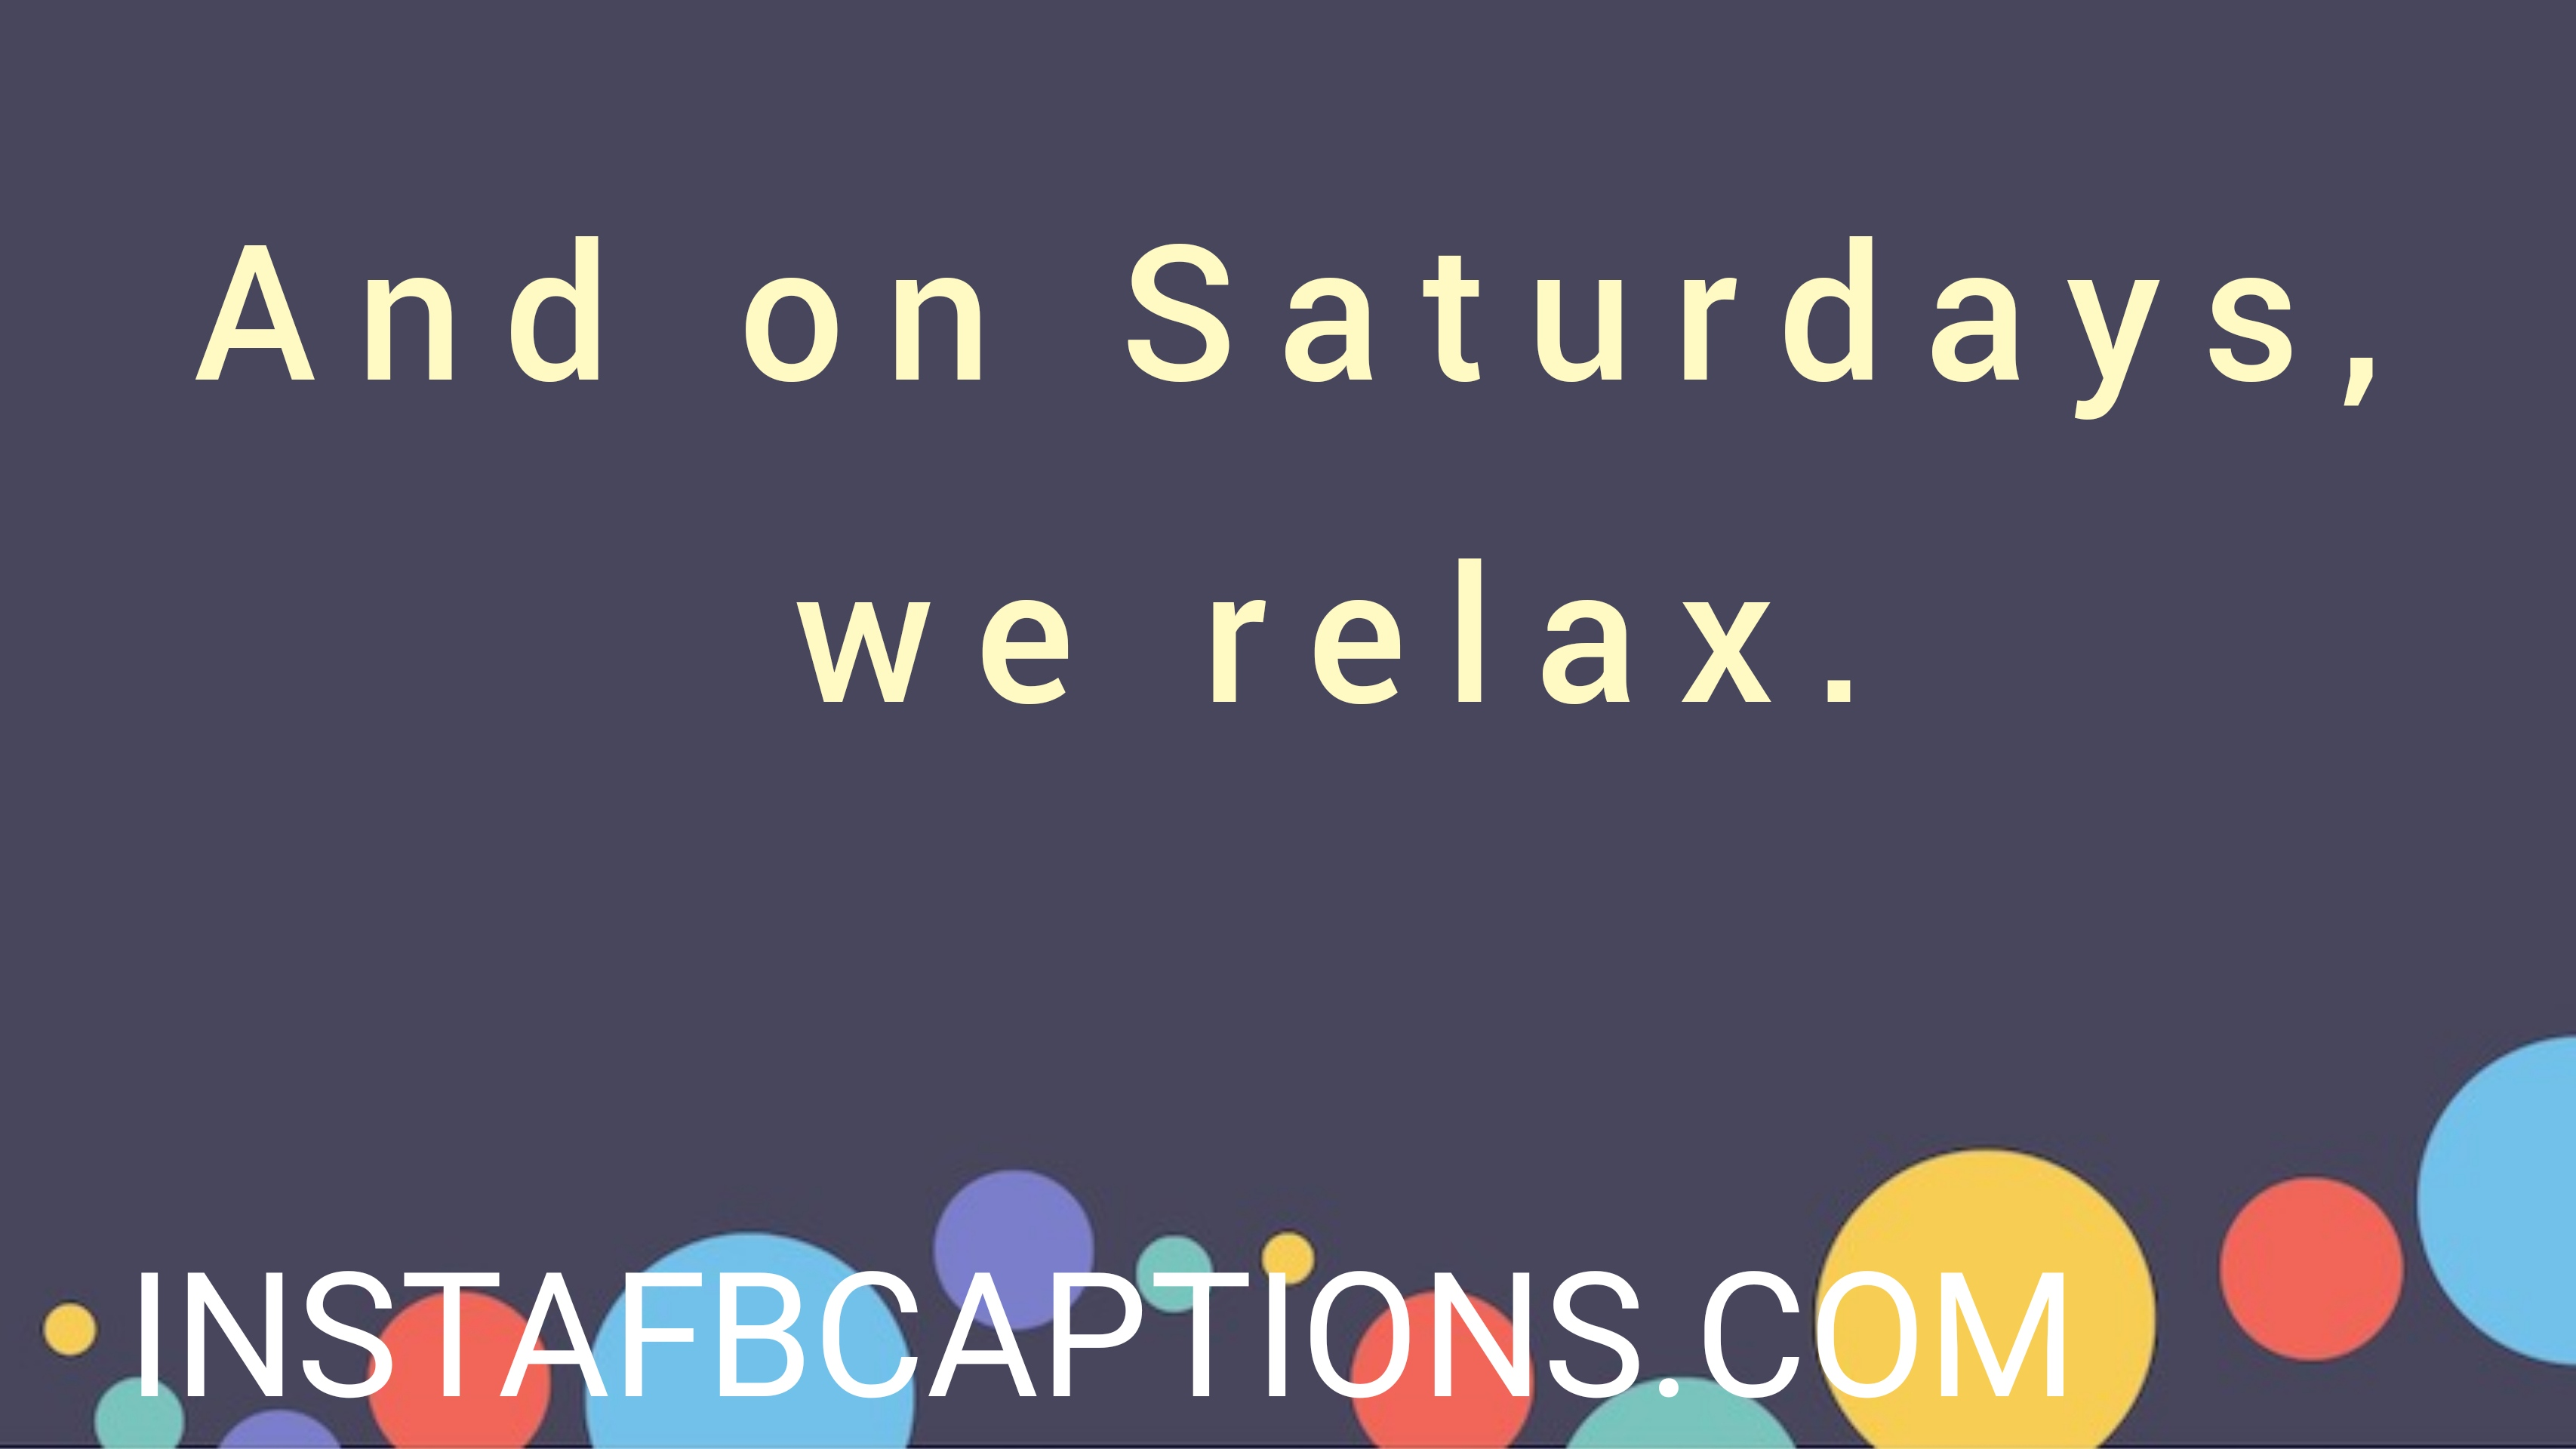 And On Saturdays, We Relaxx  - and on saturdays we relaxx - 500+ WEEKEND Instagram Captions 2021